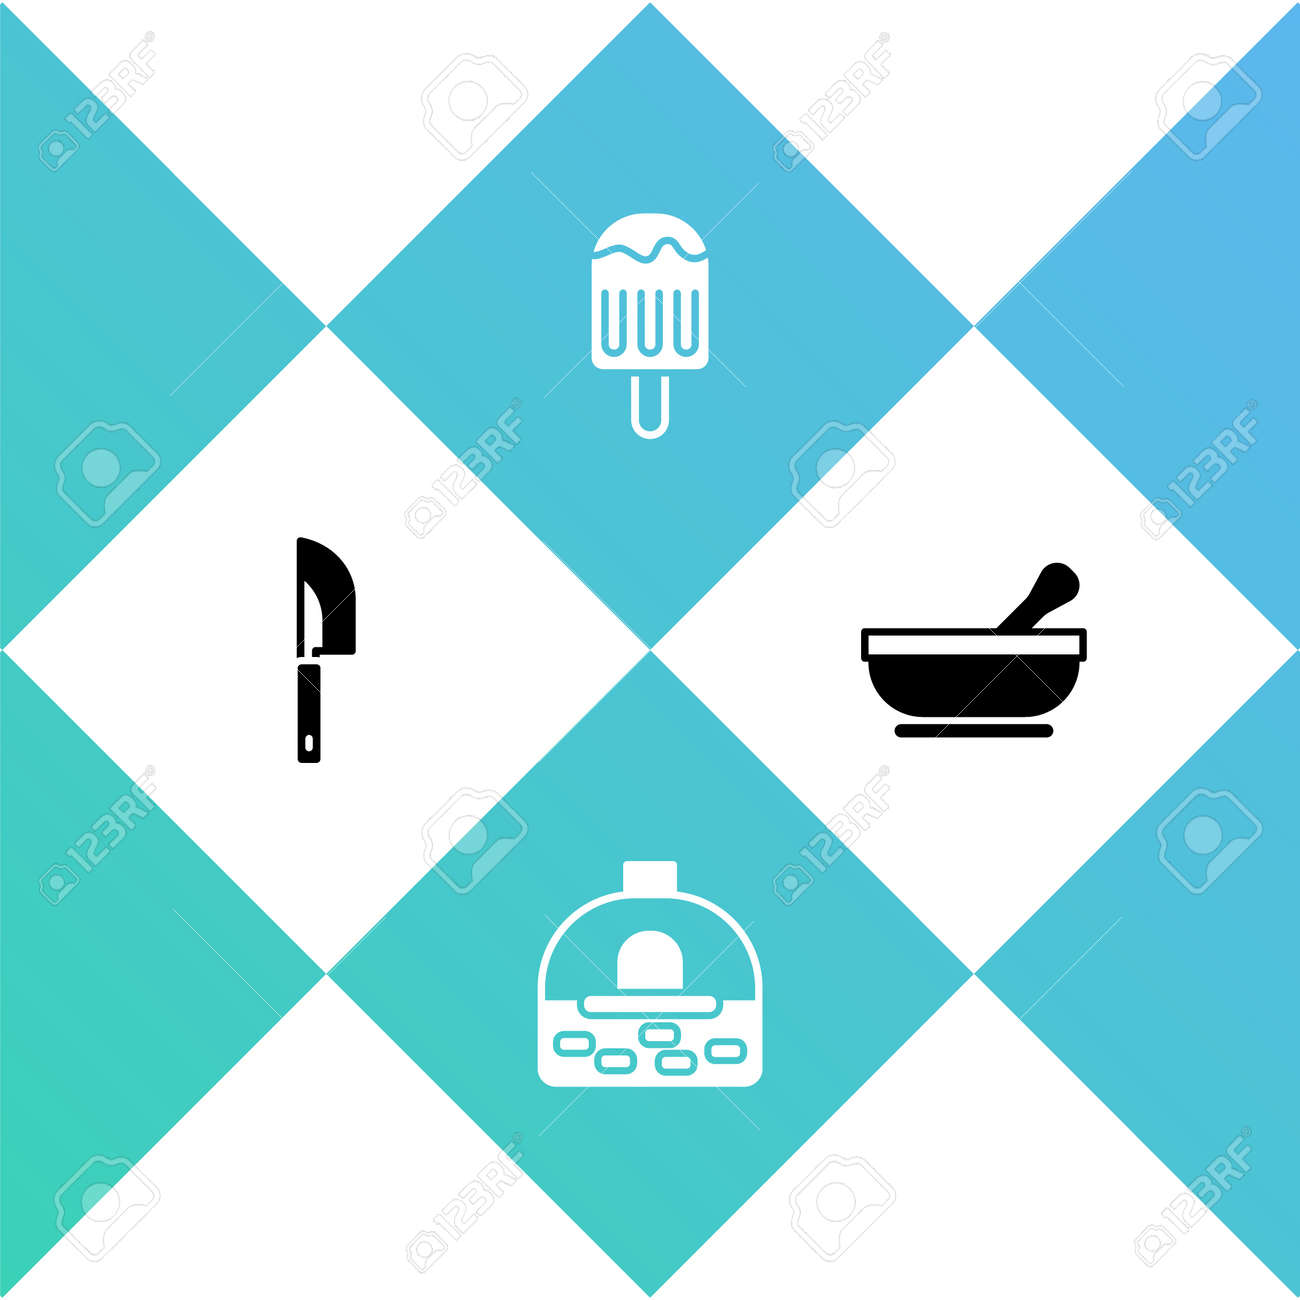 Set Knife, Brick stove, Ice cream and Mortar and pestle icon. Vector - 162113915